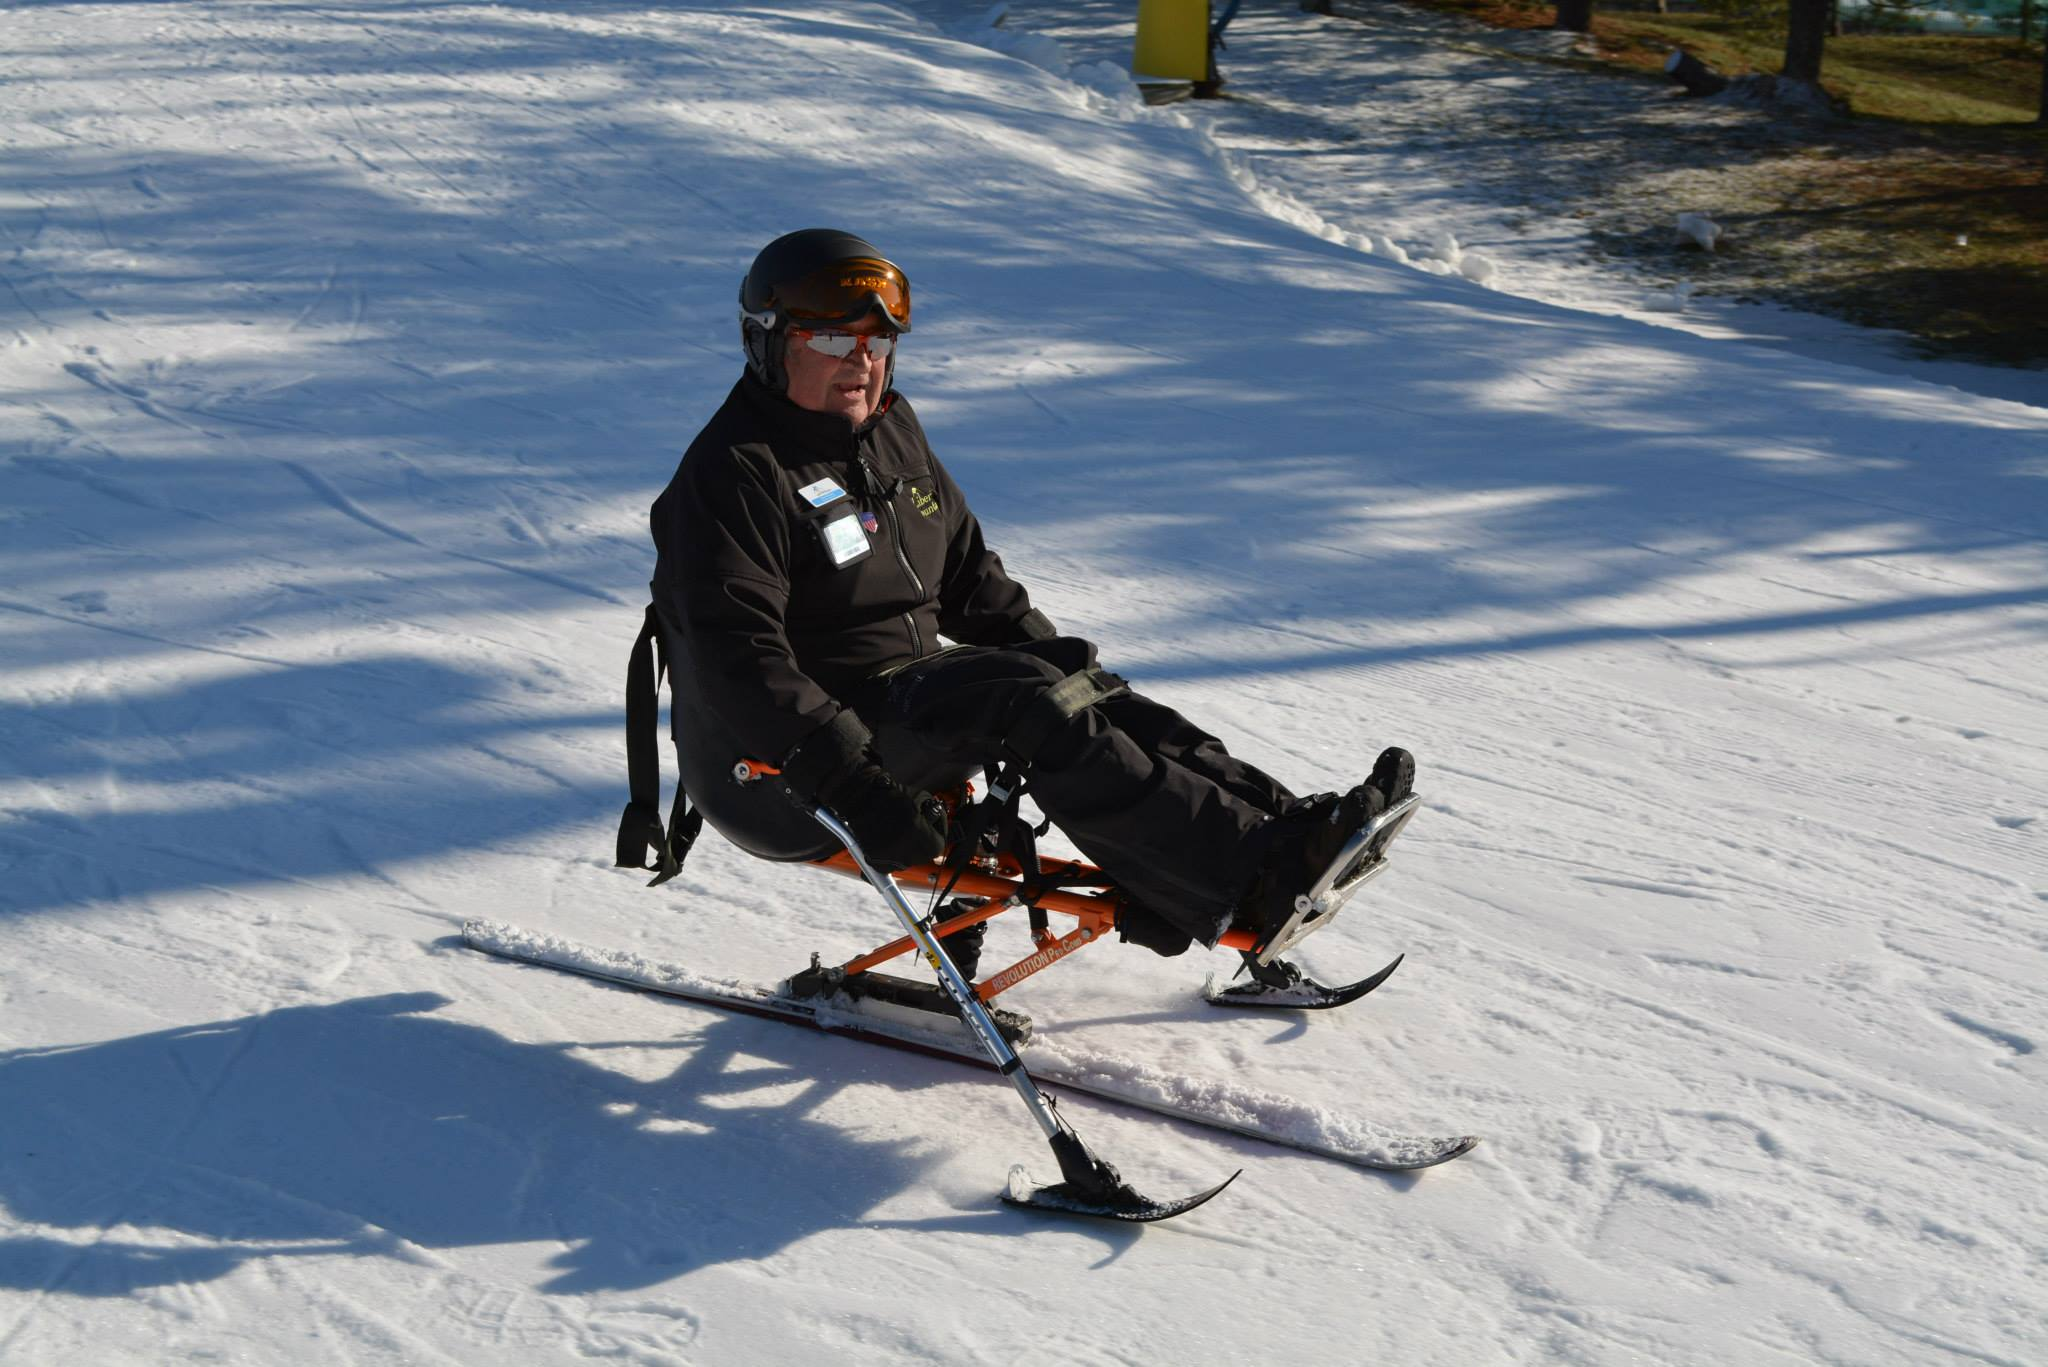 Blue Ridge Adaptive Snow Sports